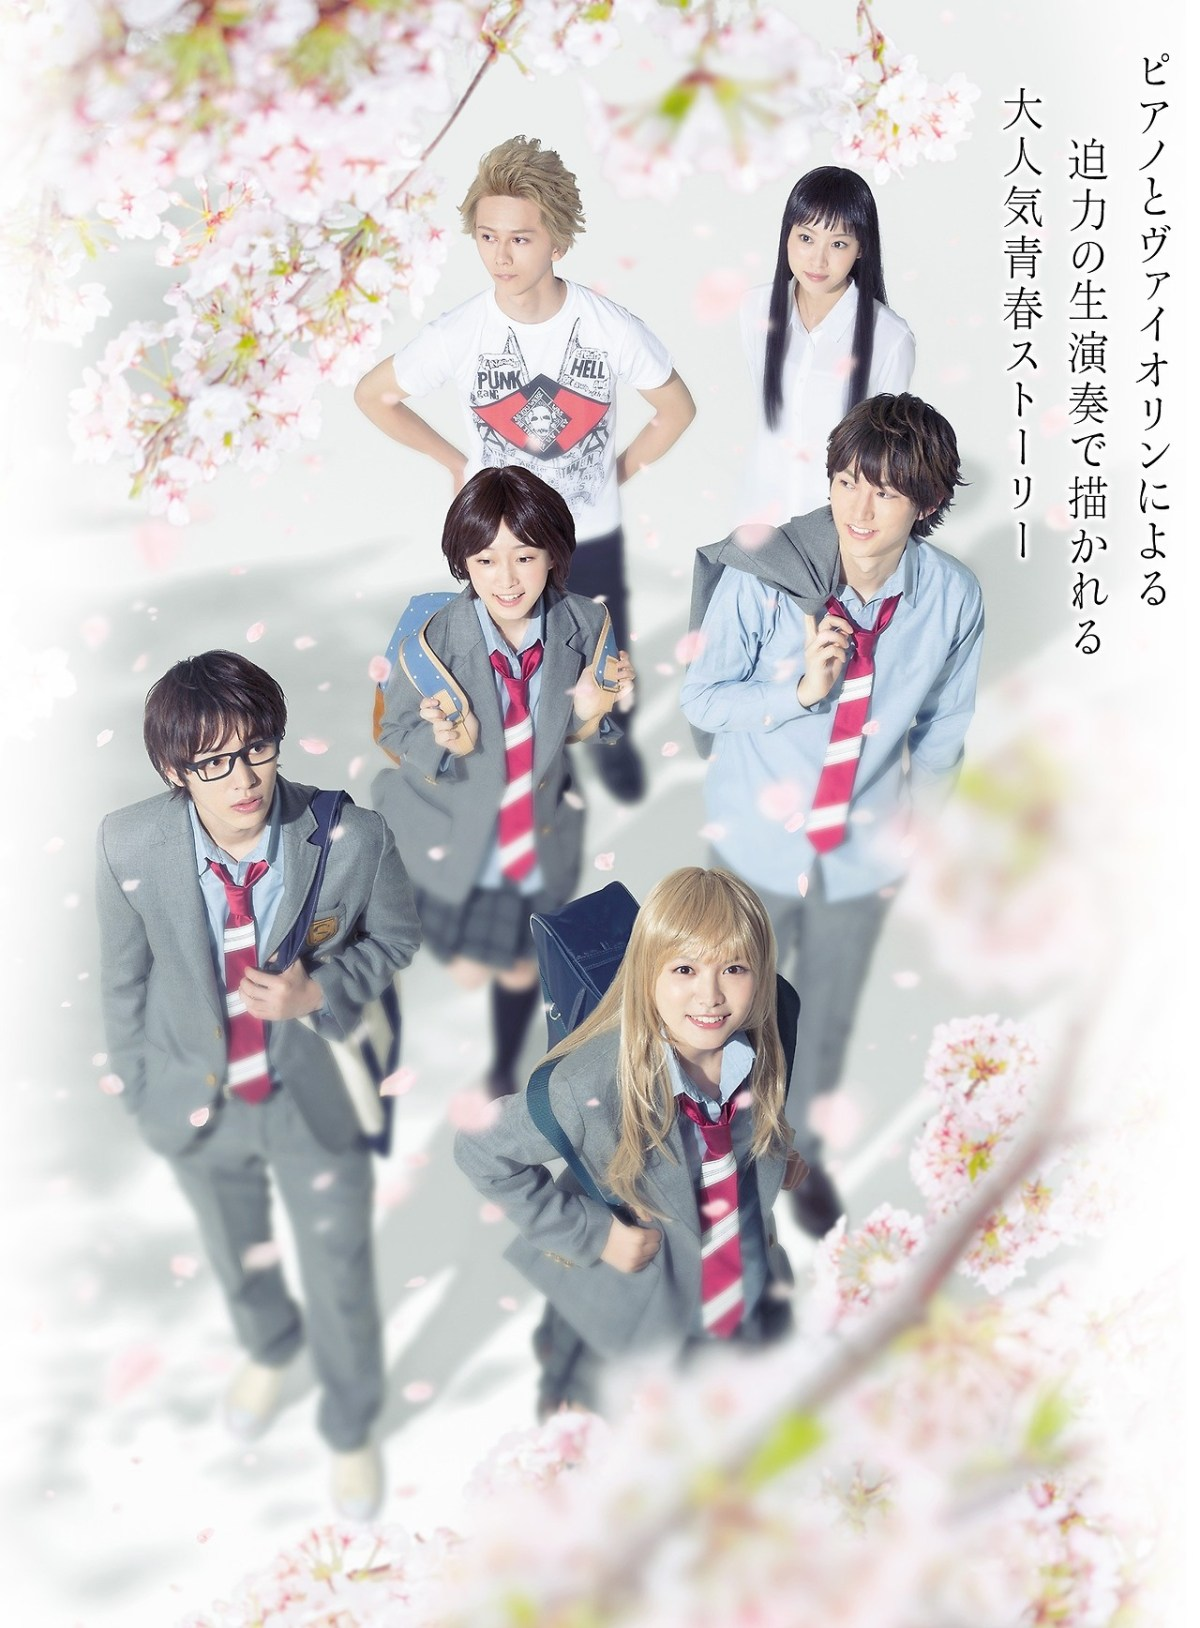 Shigatsu wa Kimi no Uso (Your Lie in April) teater stykke trailer og billede